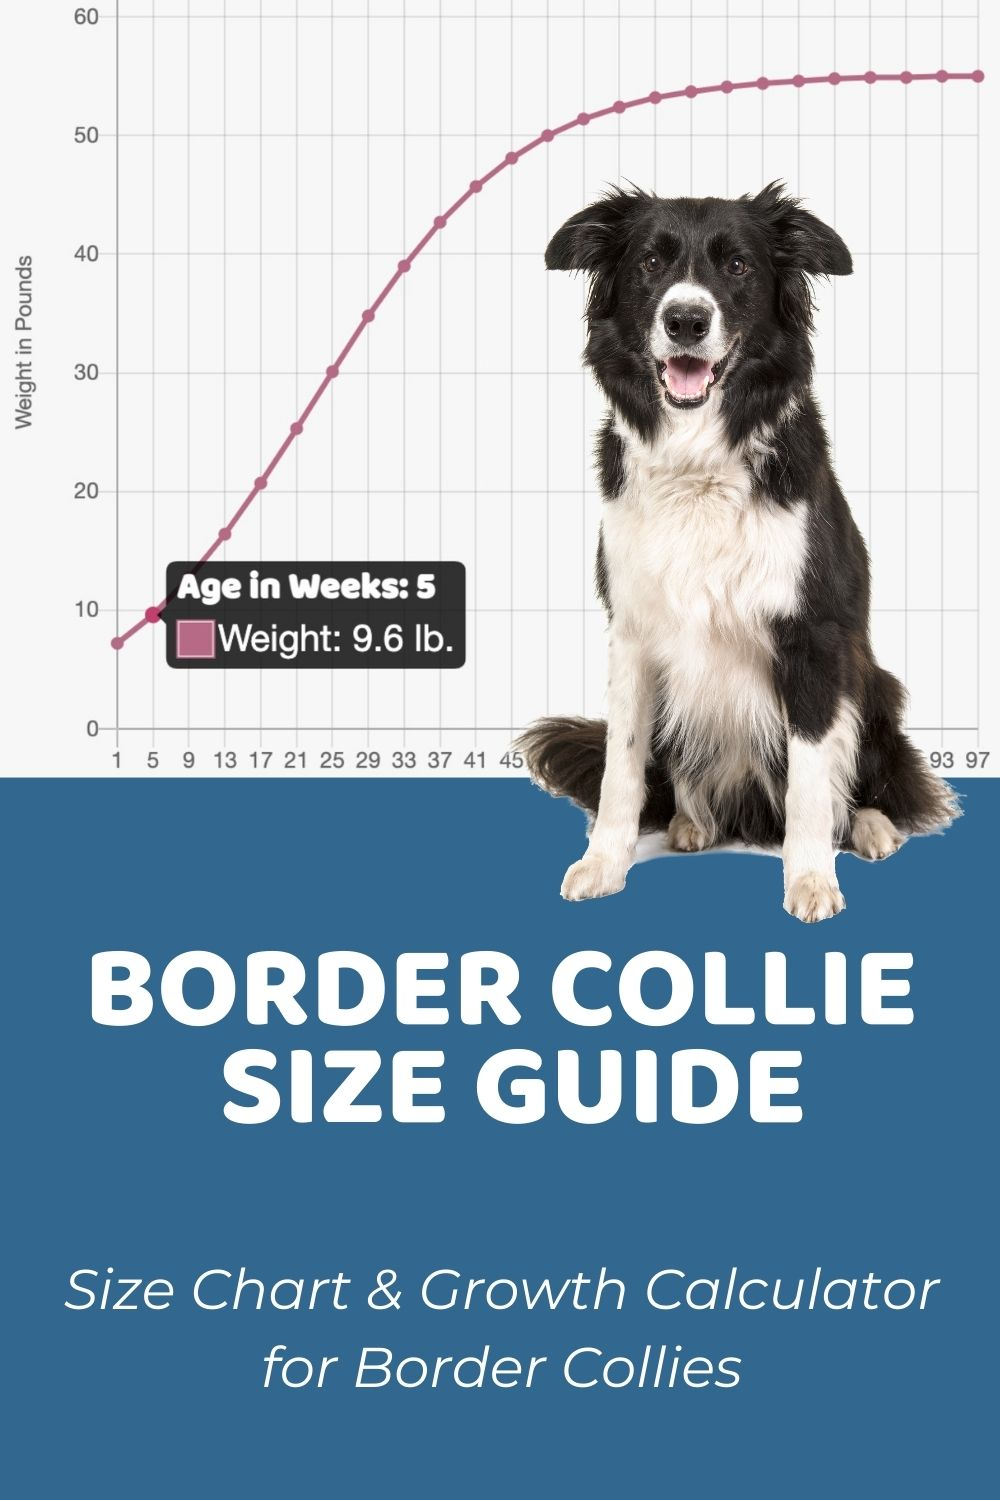 Border Collie Size Guide & Size Chart - Puppy Weight Calculator